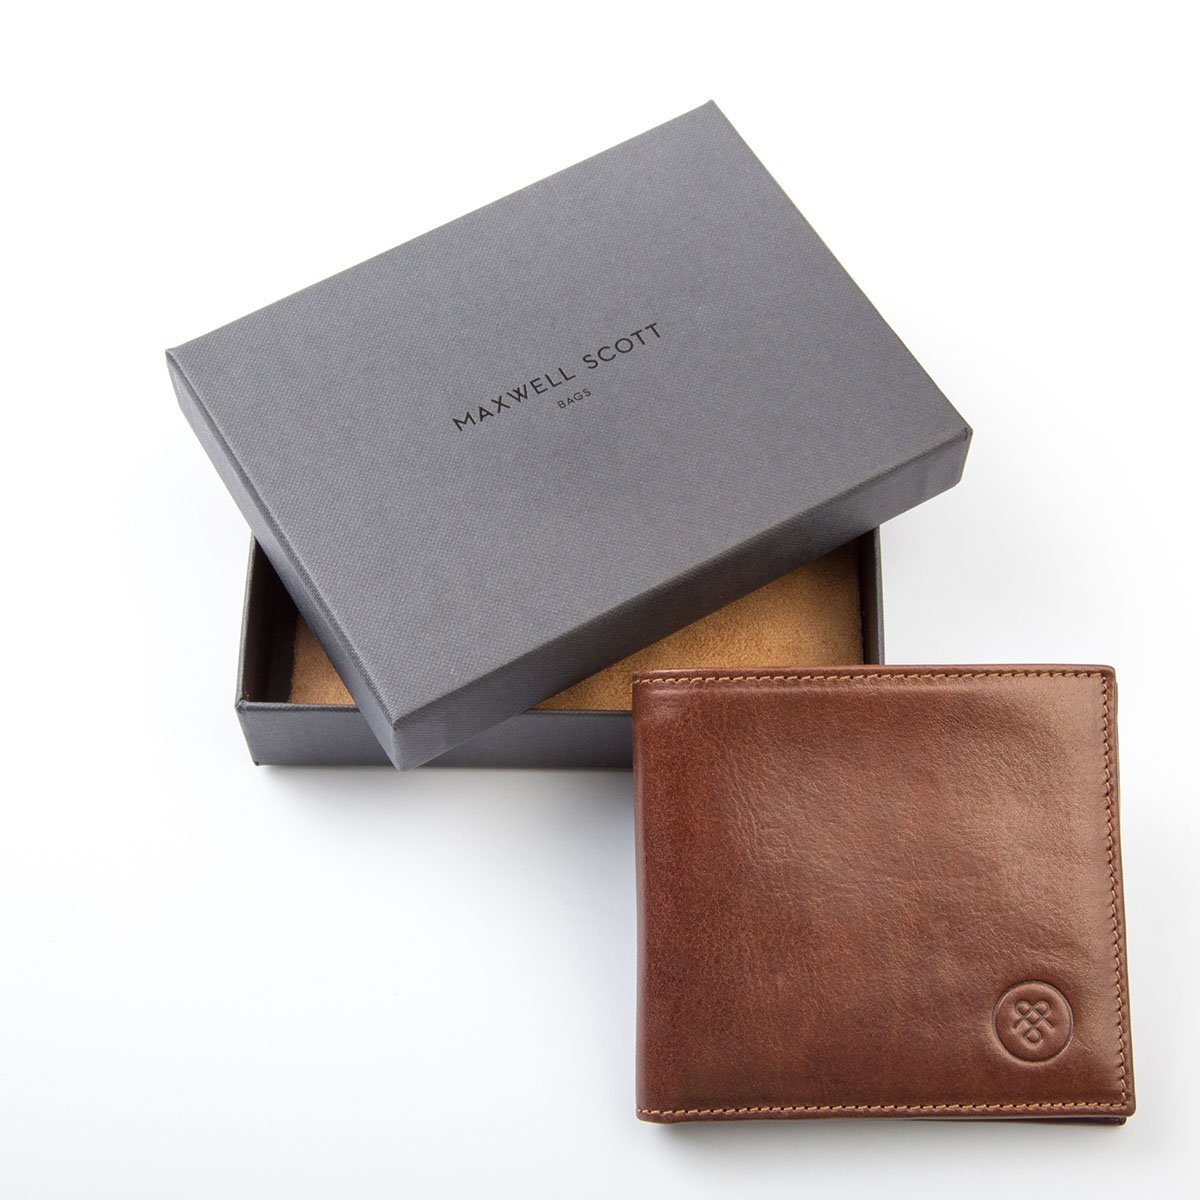 The Vittore Maxwell Scott Luxury Handcrafted Italian Mens Leather Wallet